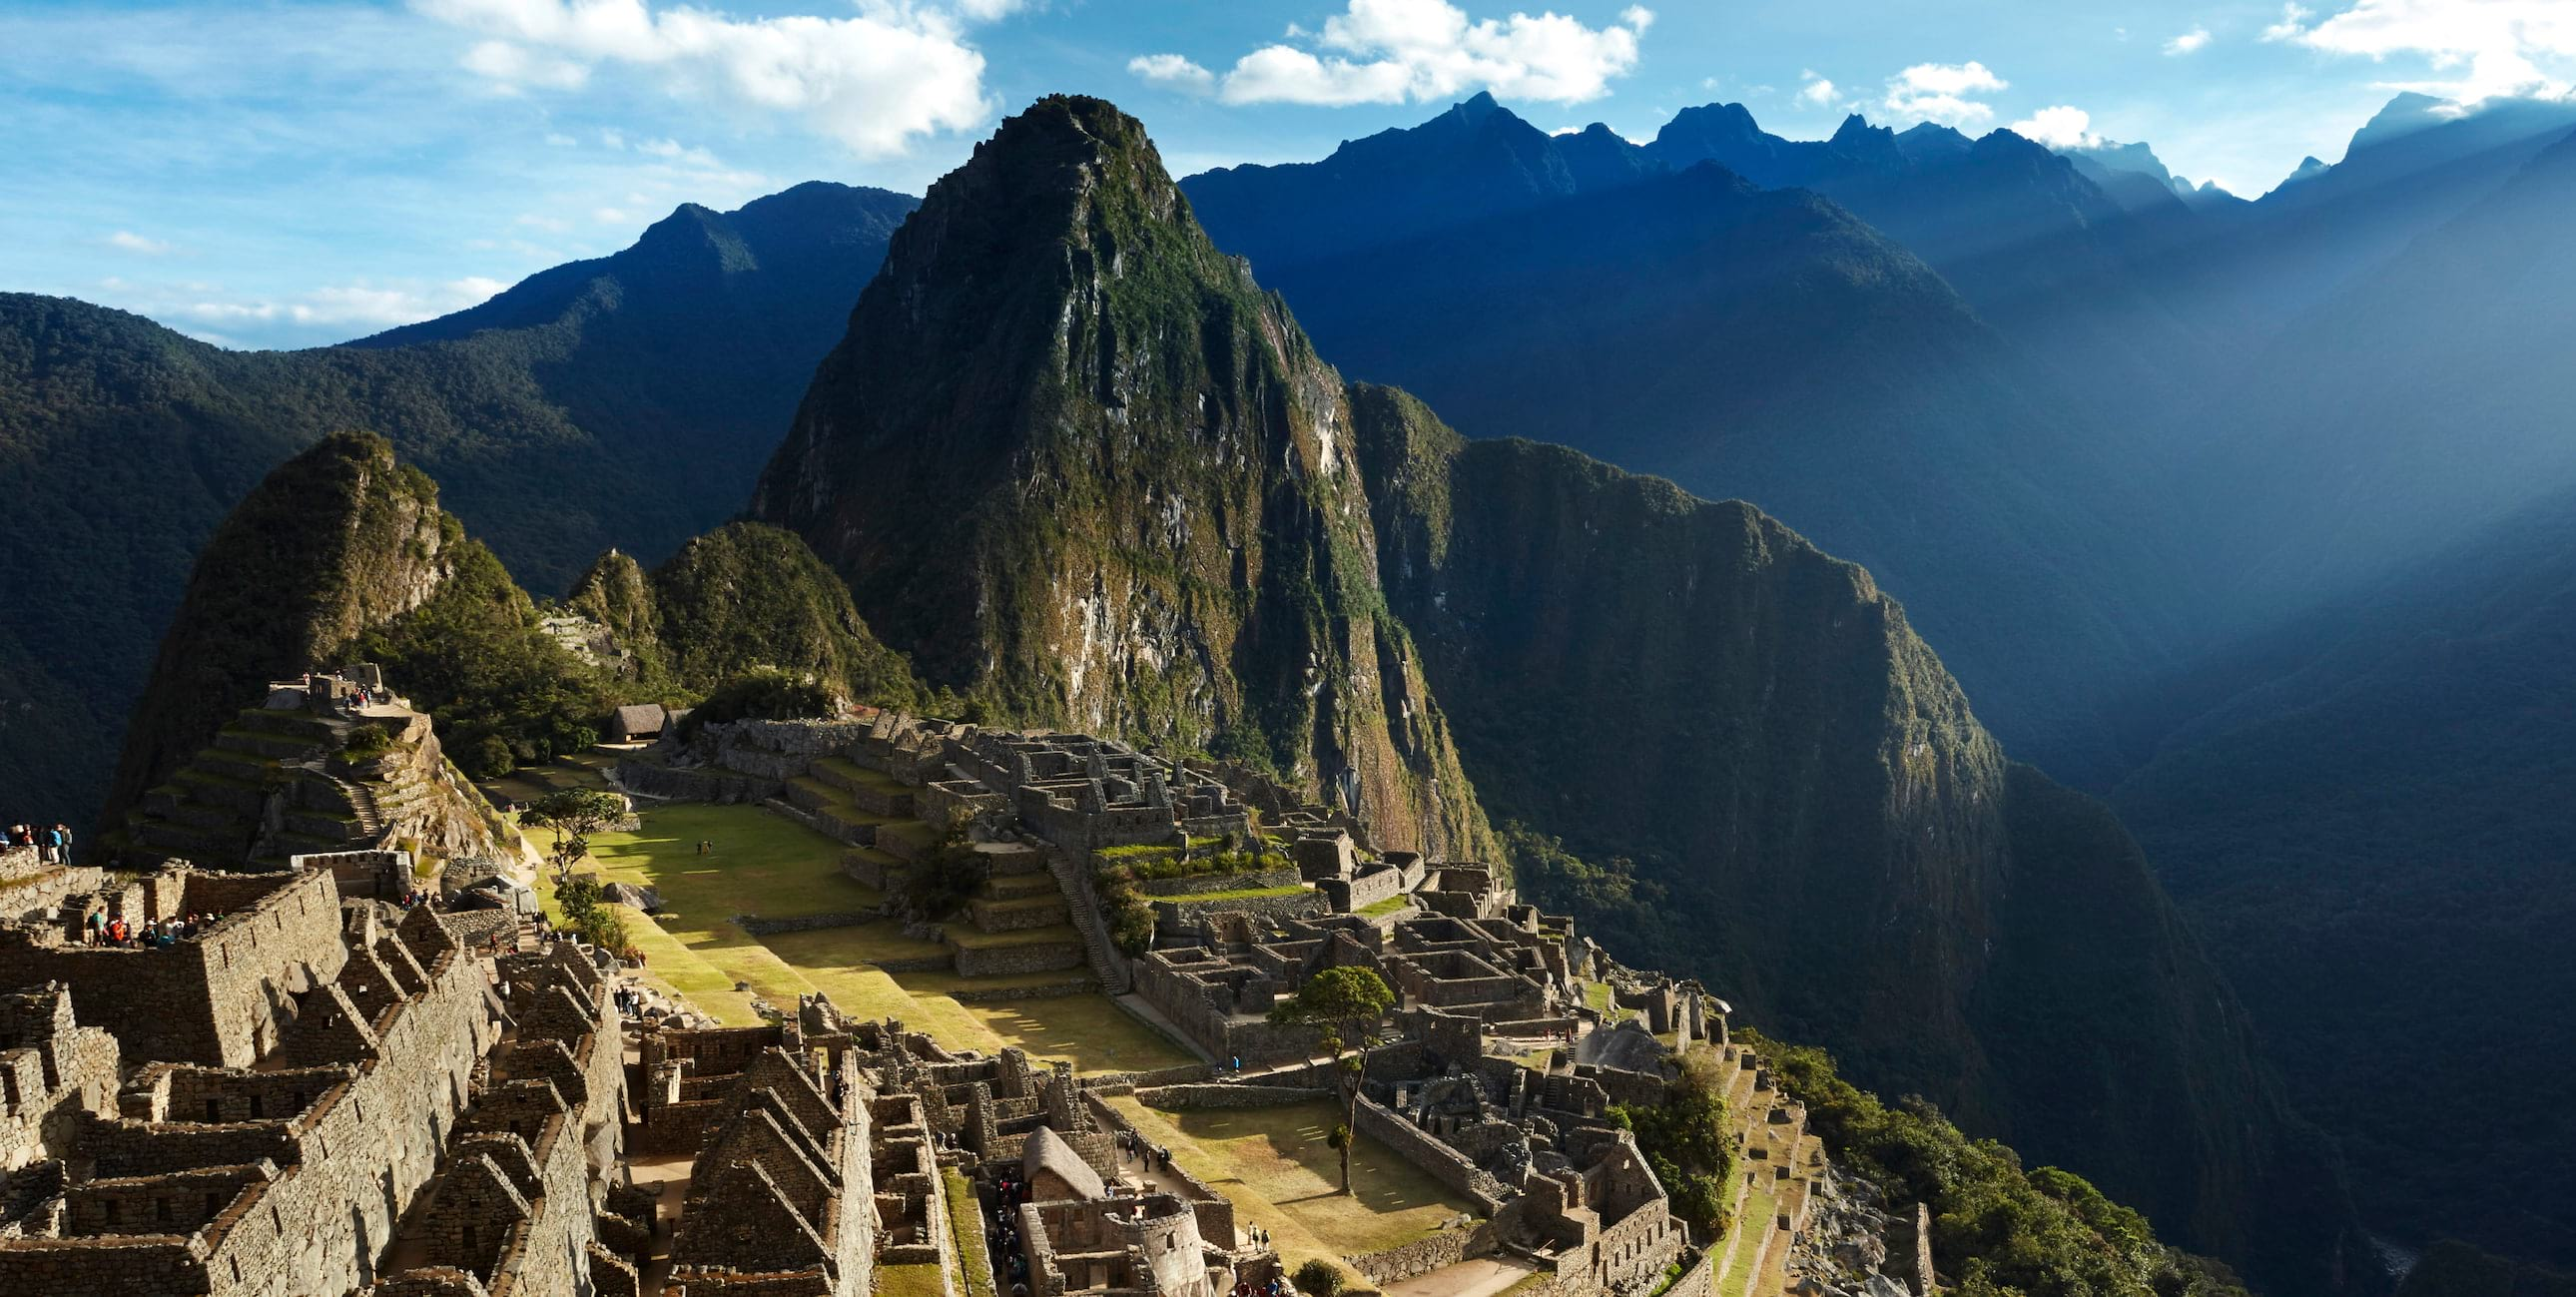 Belmond Sanctuary Lodge | Luxury Machu Picchu Hotels on map of new york, map of wadi rum, map of san pedro de atacama, map of jerusalem, map of cusco region, map of punta uva, map of galapagos islands, map of bru na boinne, map of argentina, map of taha'a, map of south america, map of inca empire, map of tikal, map of chichen itza, map of murchison falls national park, map of cuzco, map of asunción, map of inca society, map of tenochtitlan, map of peru,